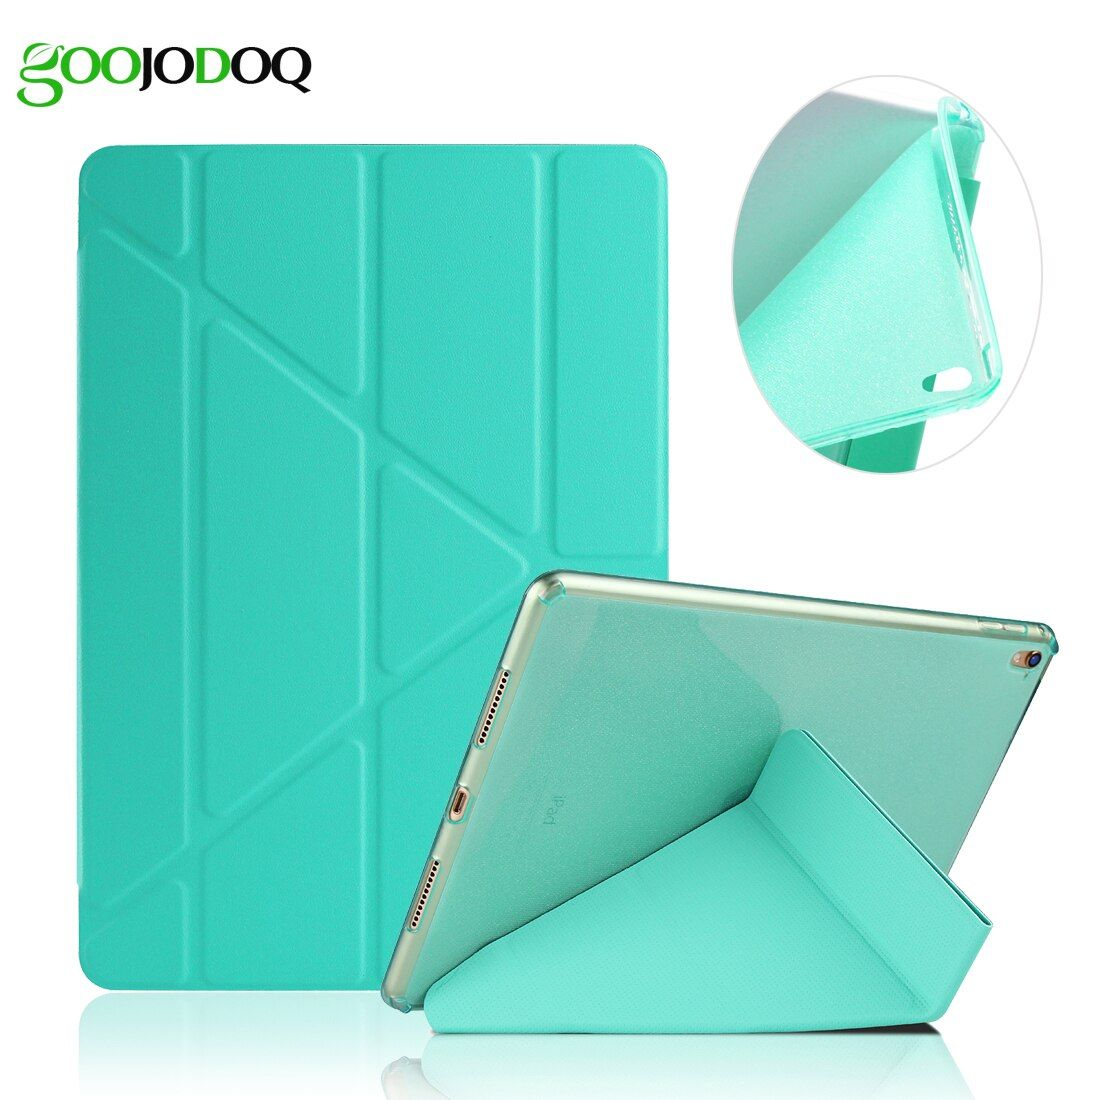 Case For iPad Pro 9.7 / iPad 2 3 4 PU Leather Smart Cover, [Multiple Stand + Glitter Silicone Soft Back] for iPad 4 Case